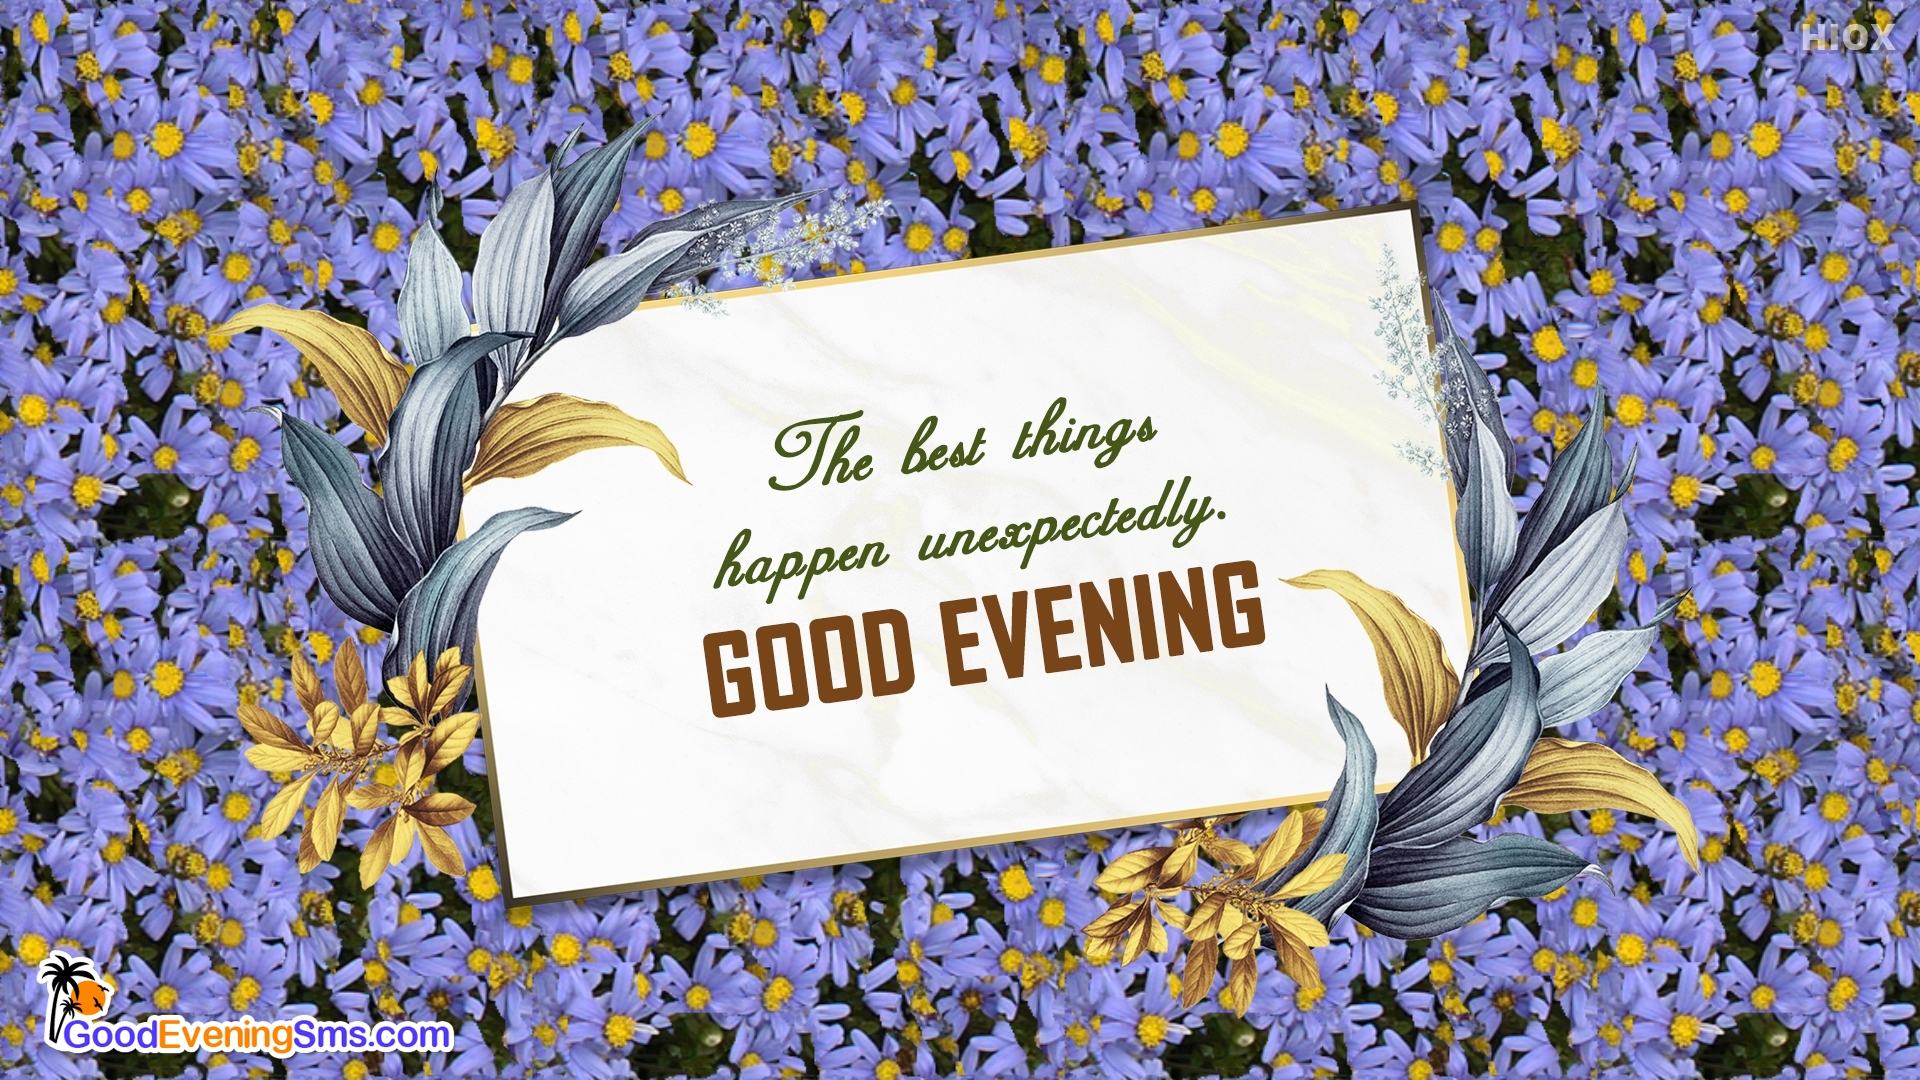 The Best Things Happen Unexpectedly. Good Evening.